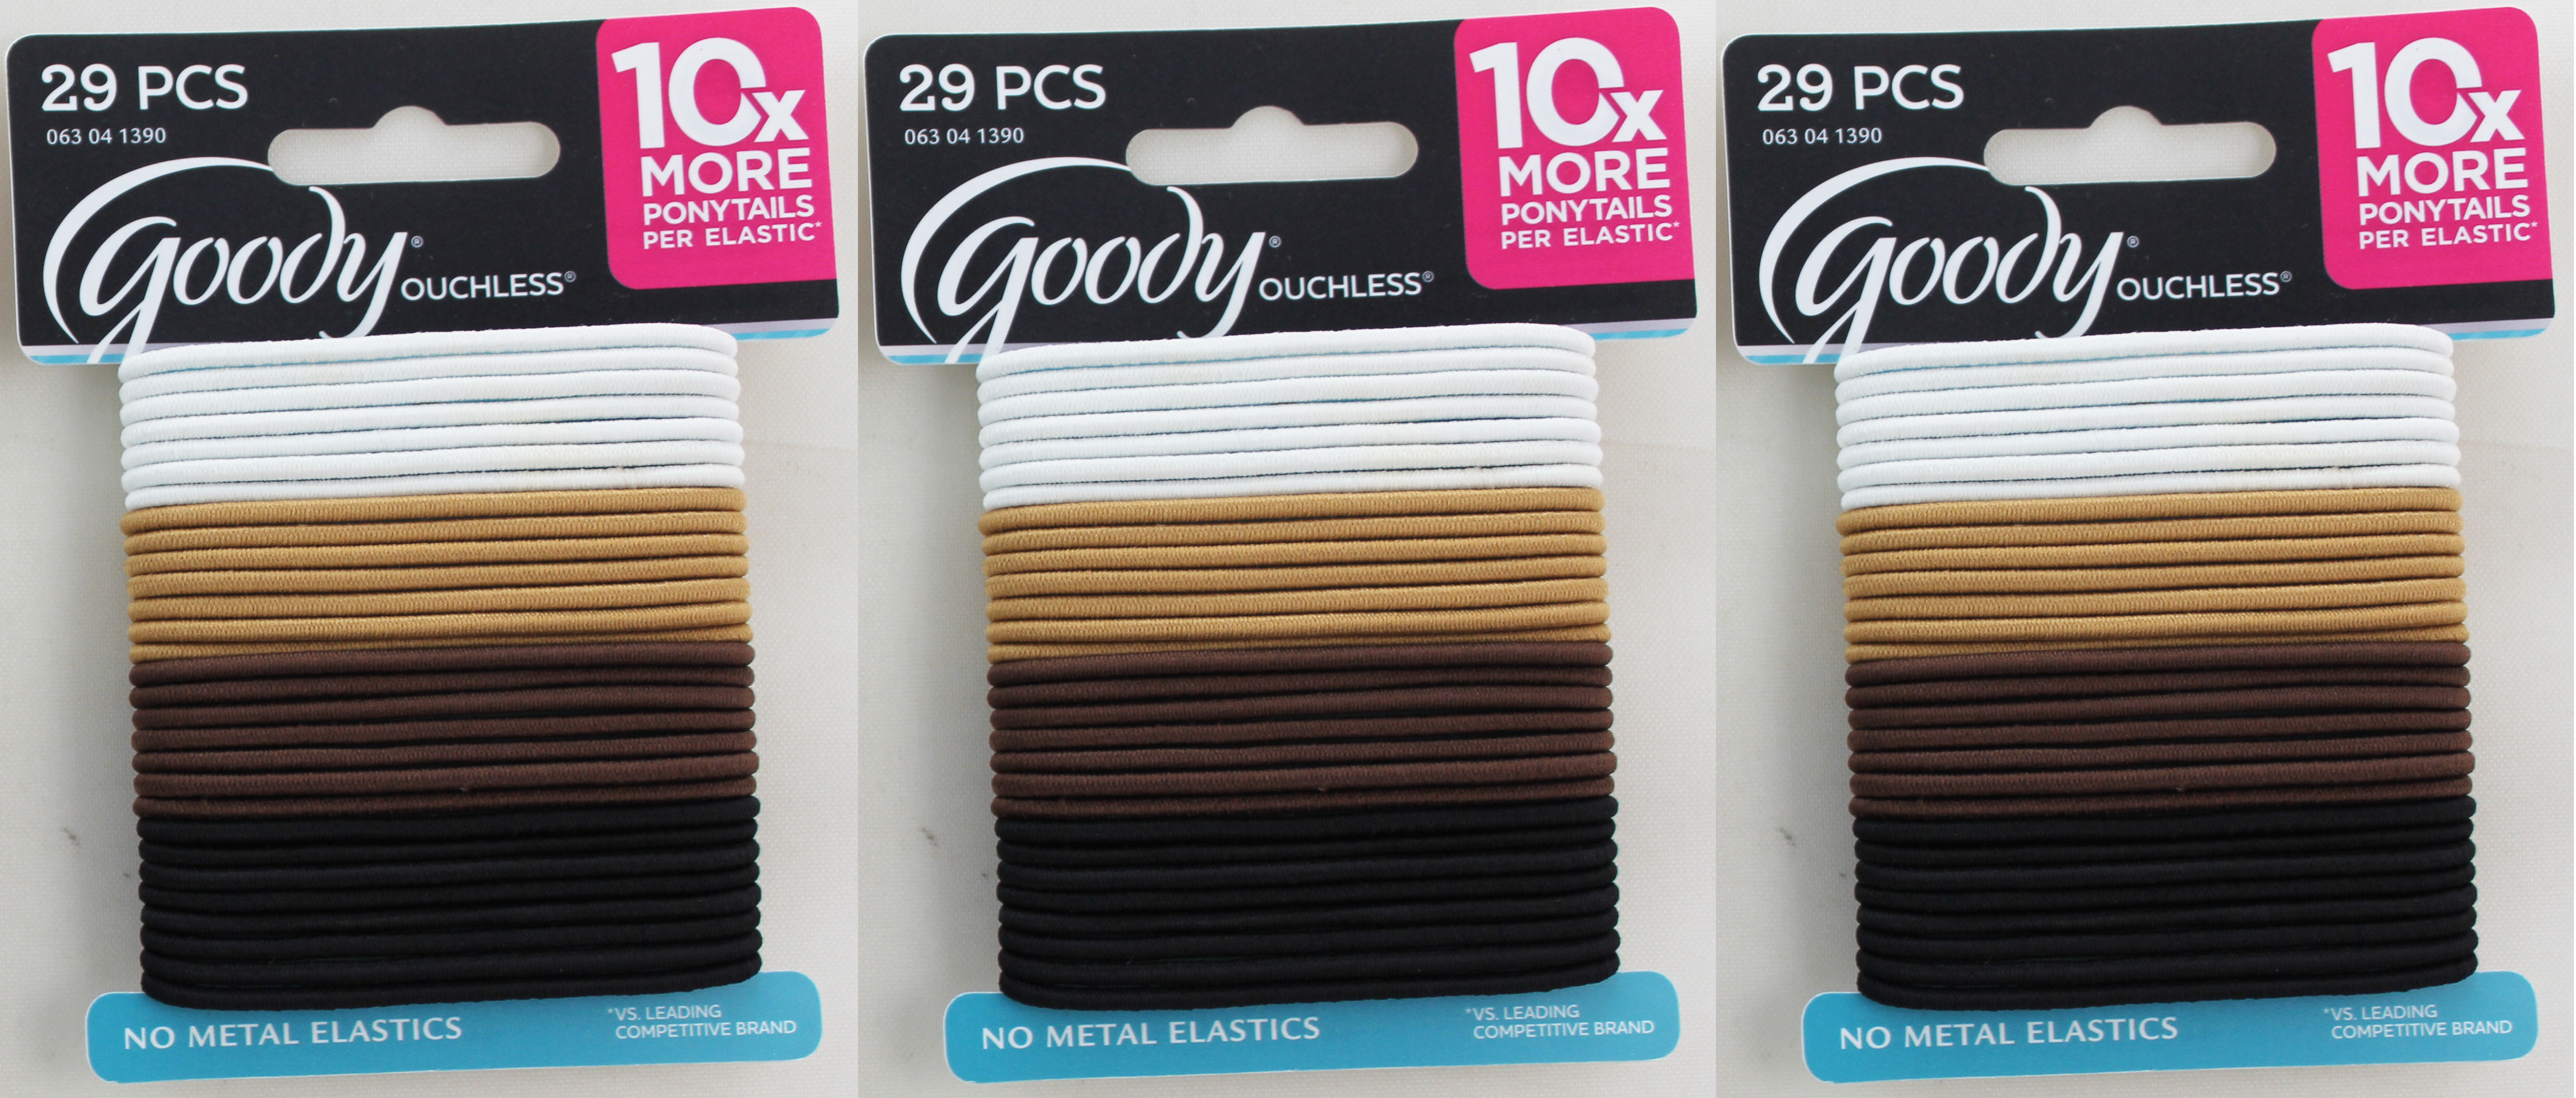 Goody Ouchless Elastic Ponytailer Tie Backs 29-Pack